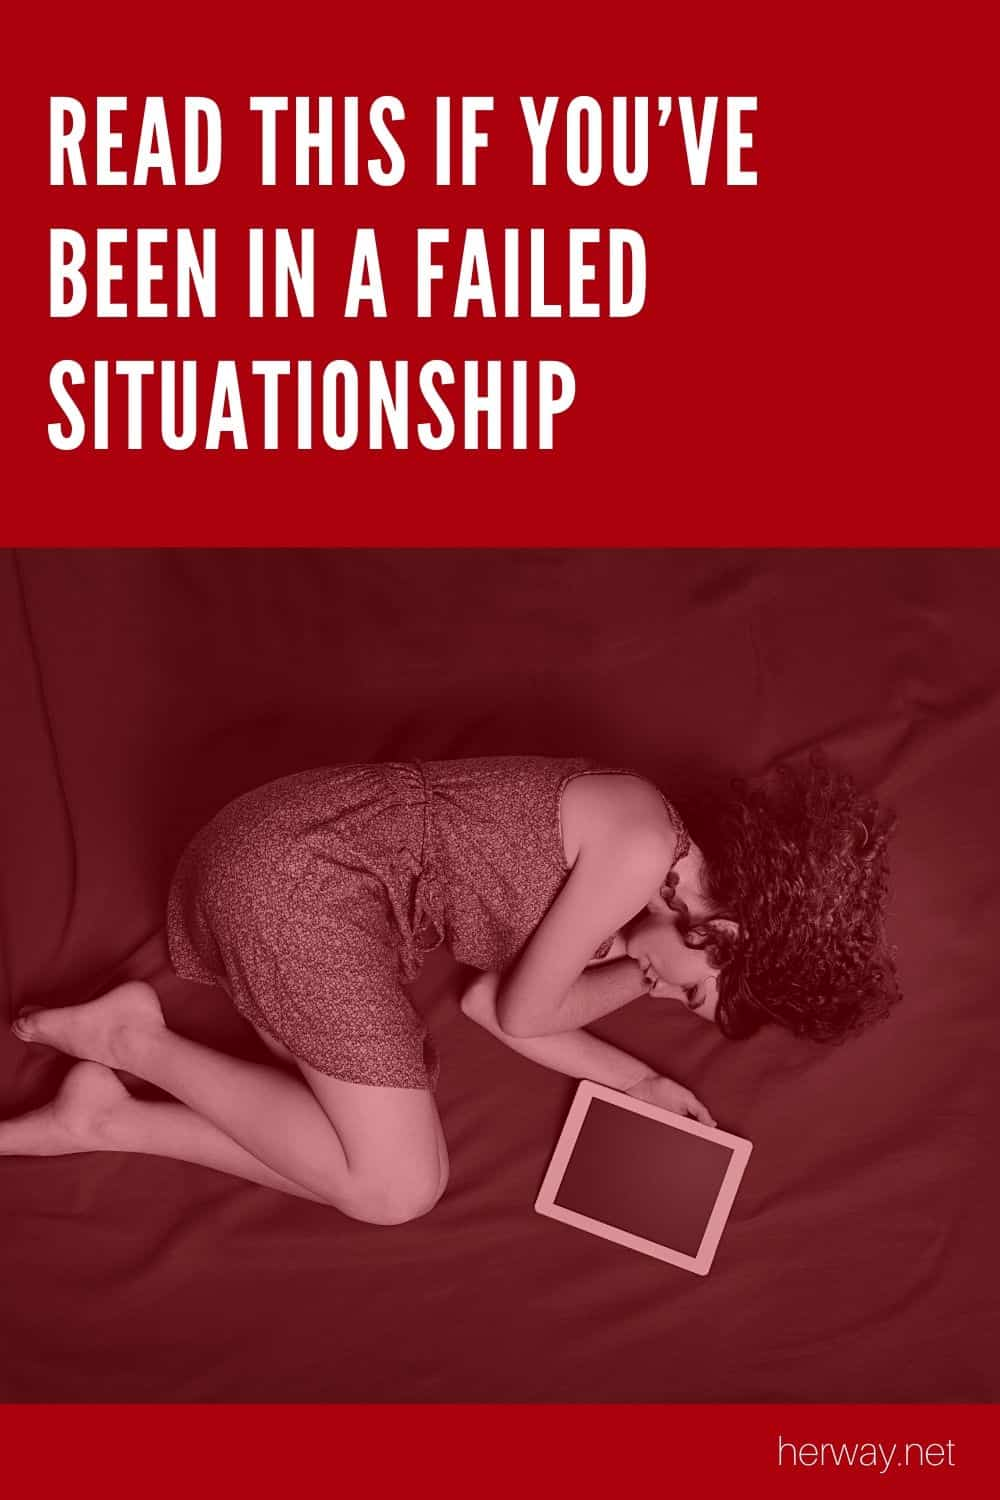 Read This If You've Been In A Failed Situationship